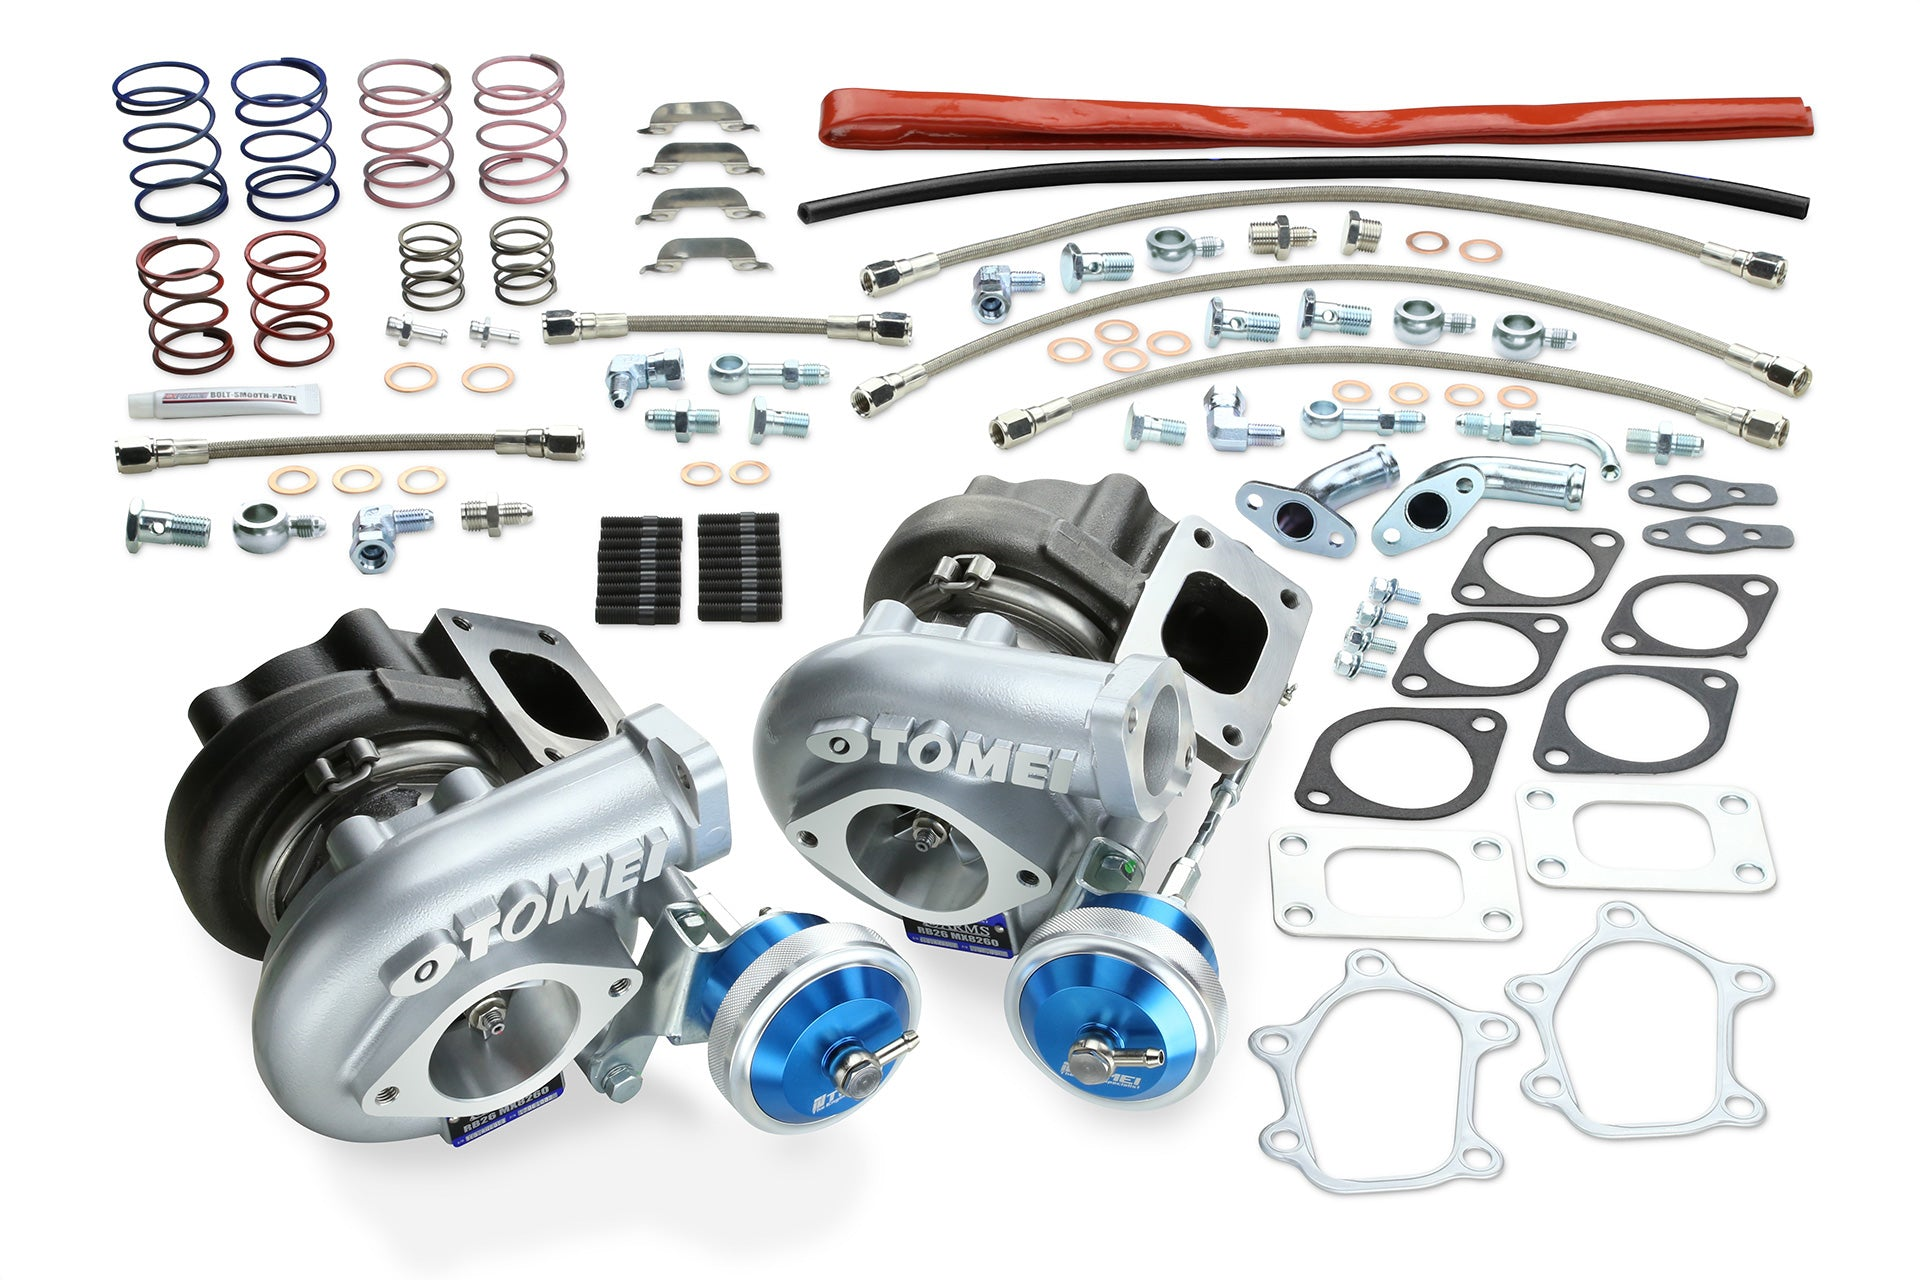 Tomei TURBOCHARGER KIT ARMS MX7655 RB26DETT